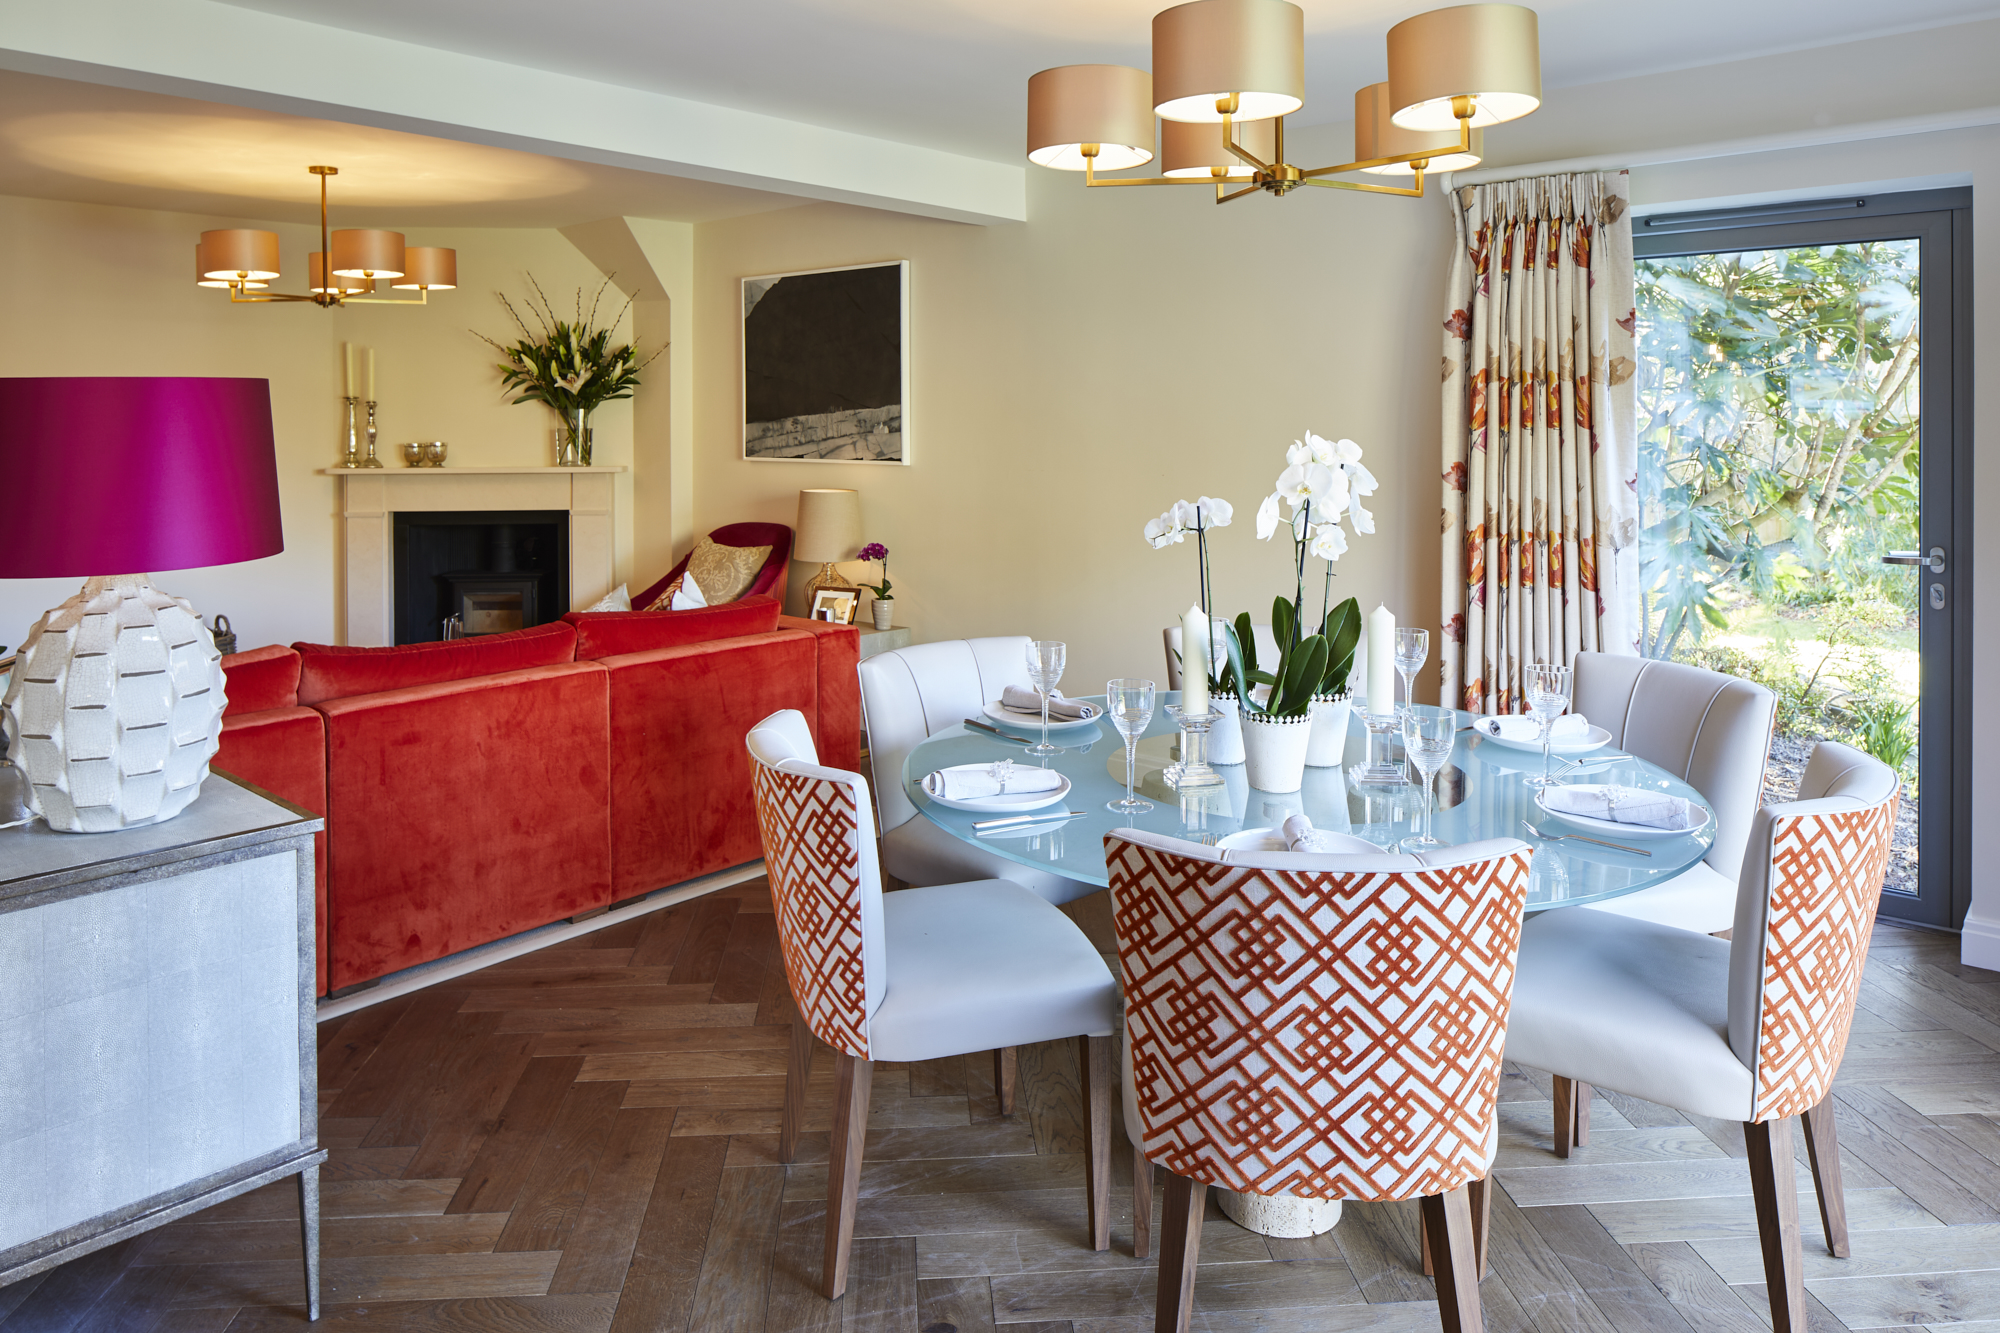 Ann Gibbons Interior Design, New Milton, Hampshire